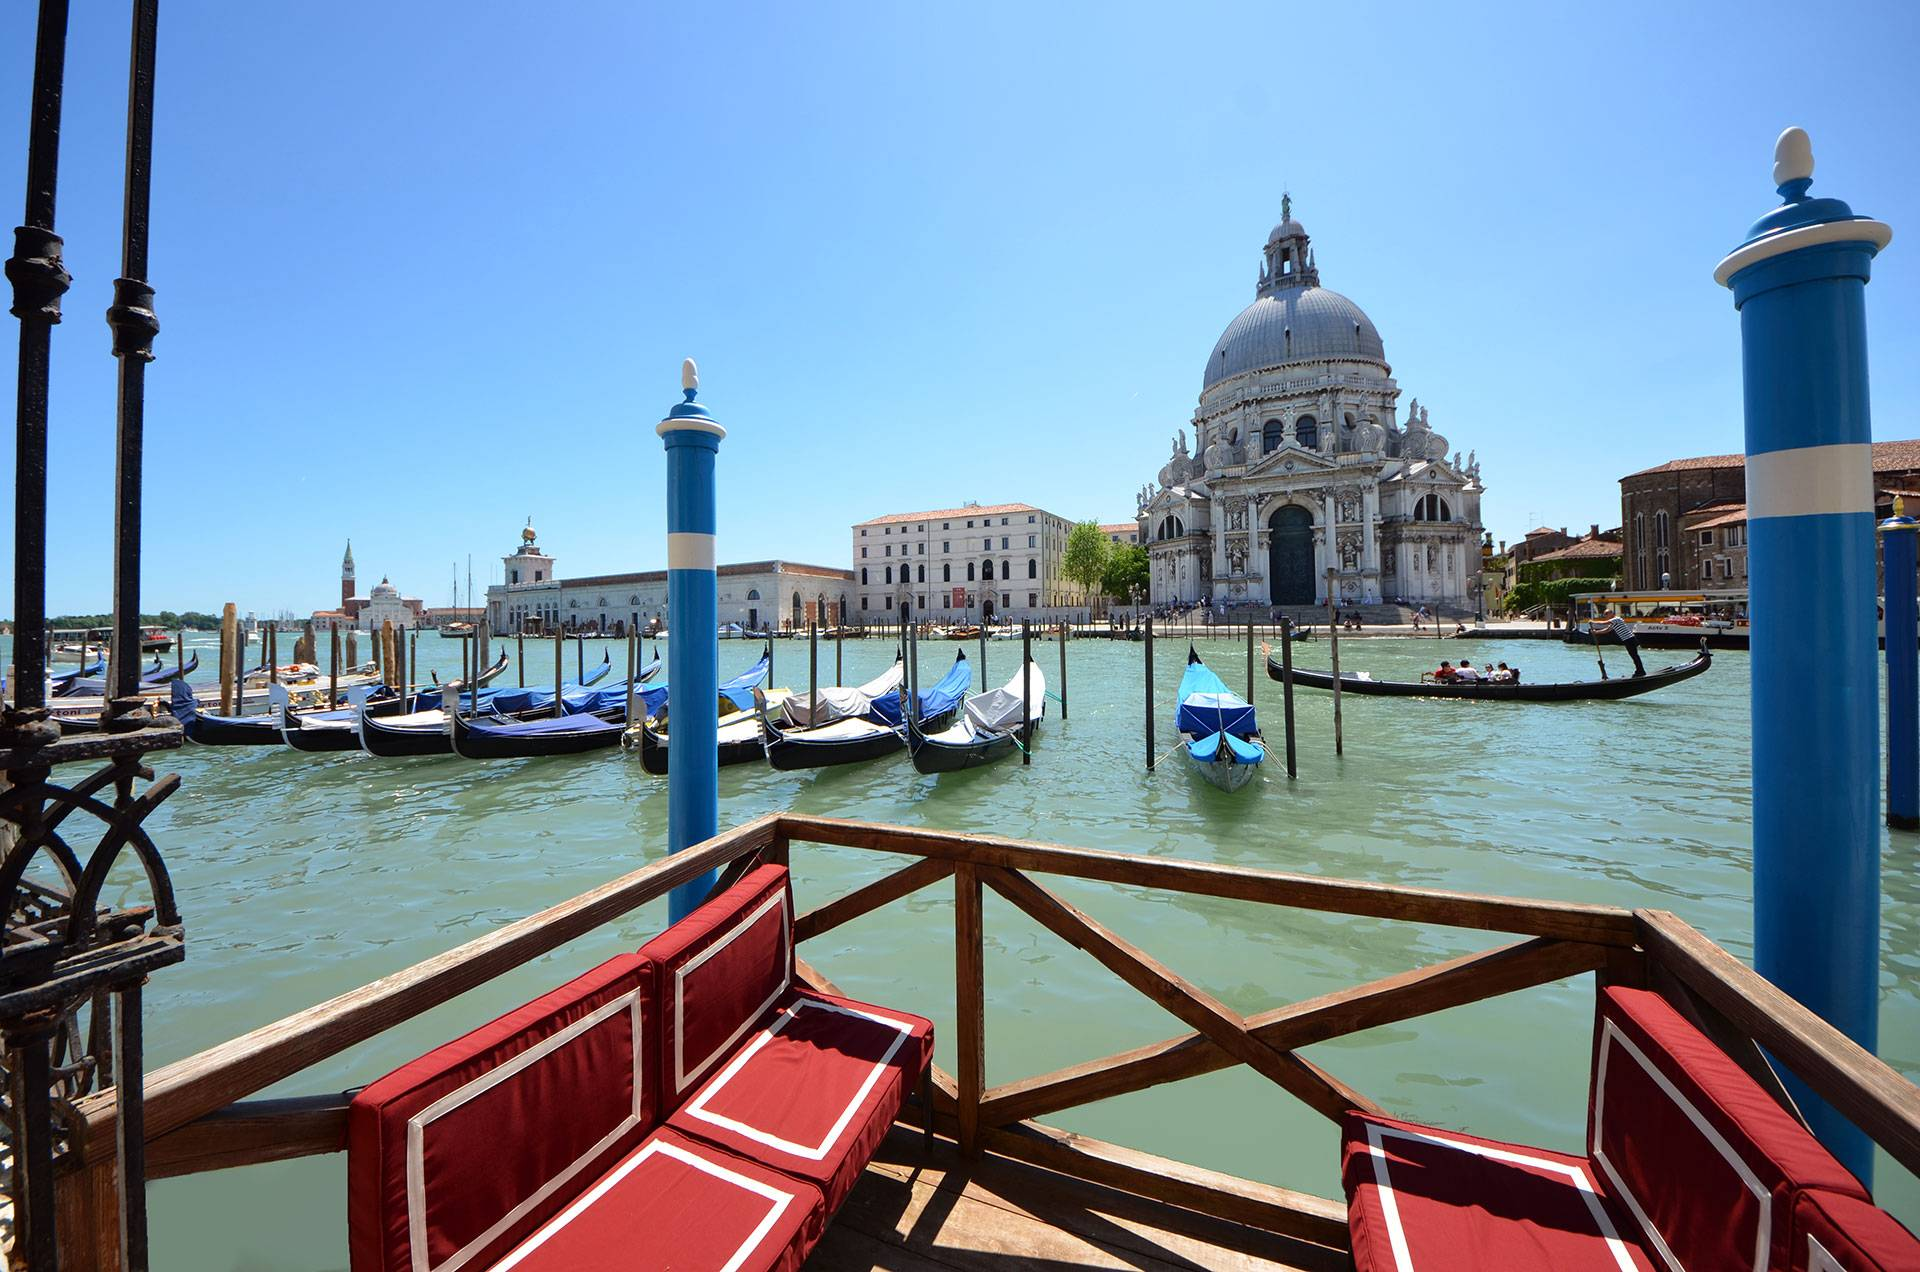 The Private Terrace on the Grand Canal is absolutely unique